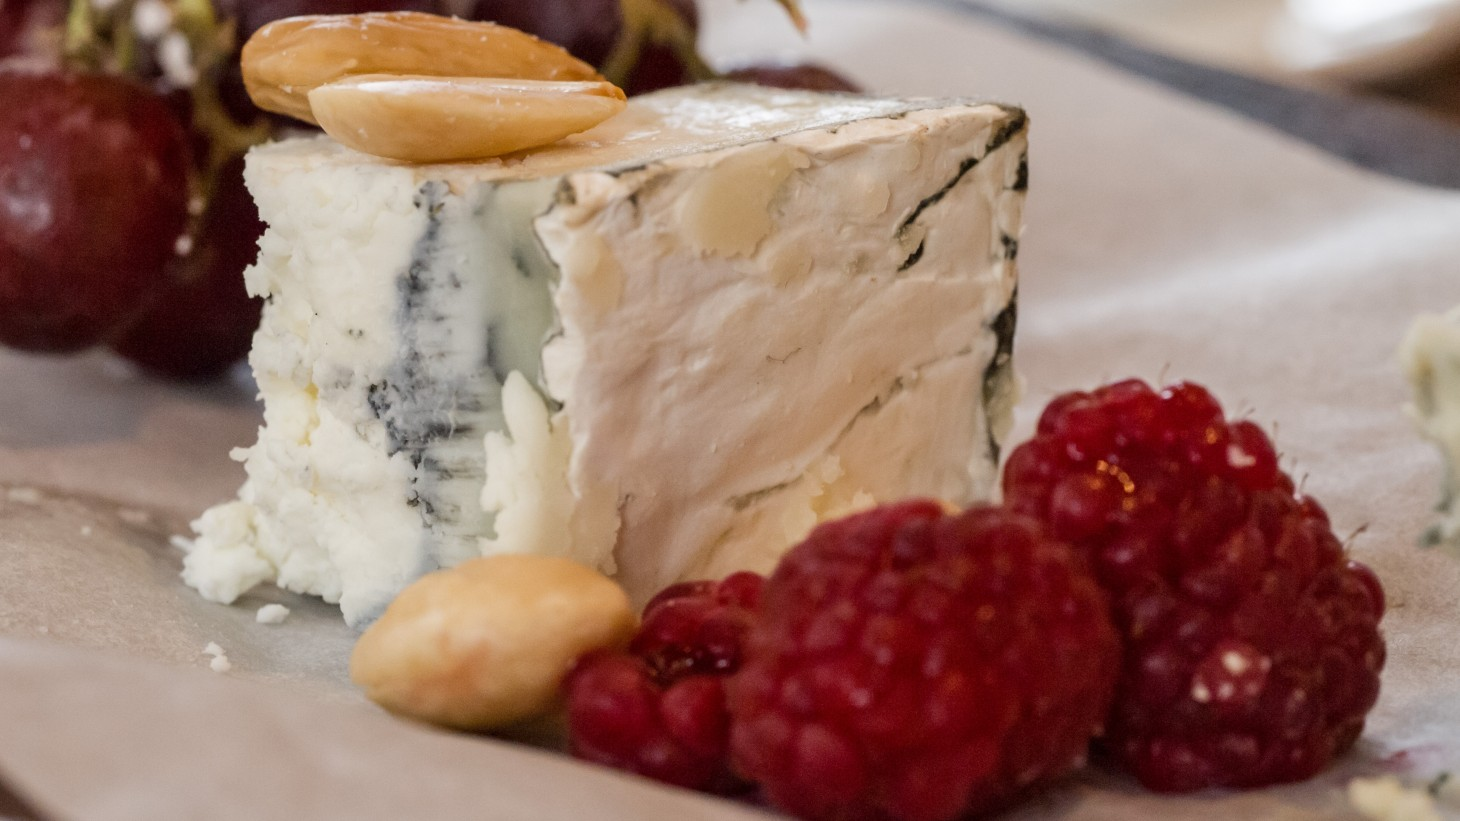 hunk of blue cheese with nuts and raspberries